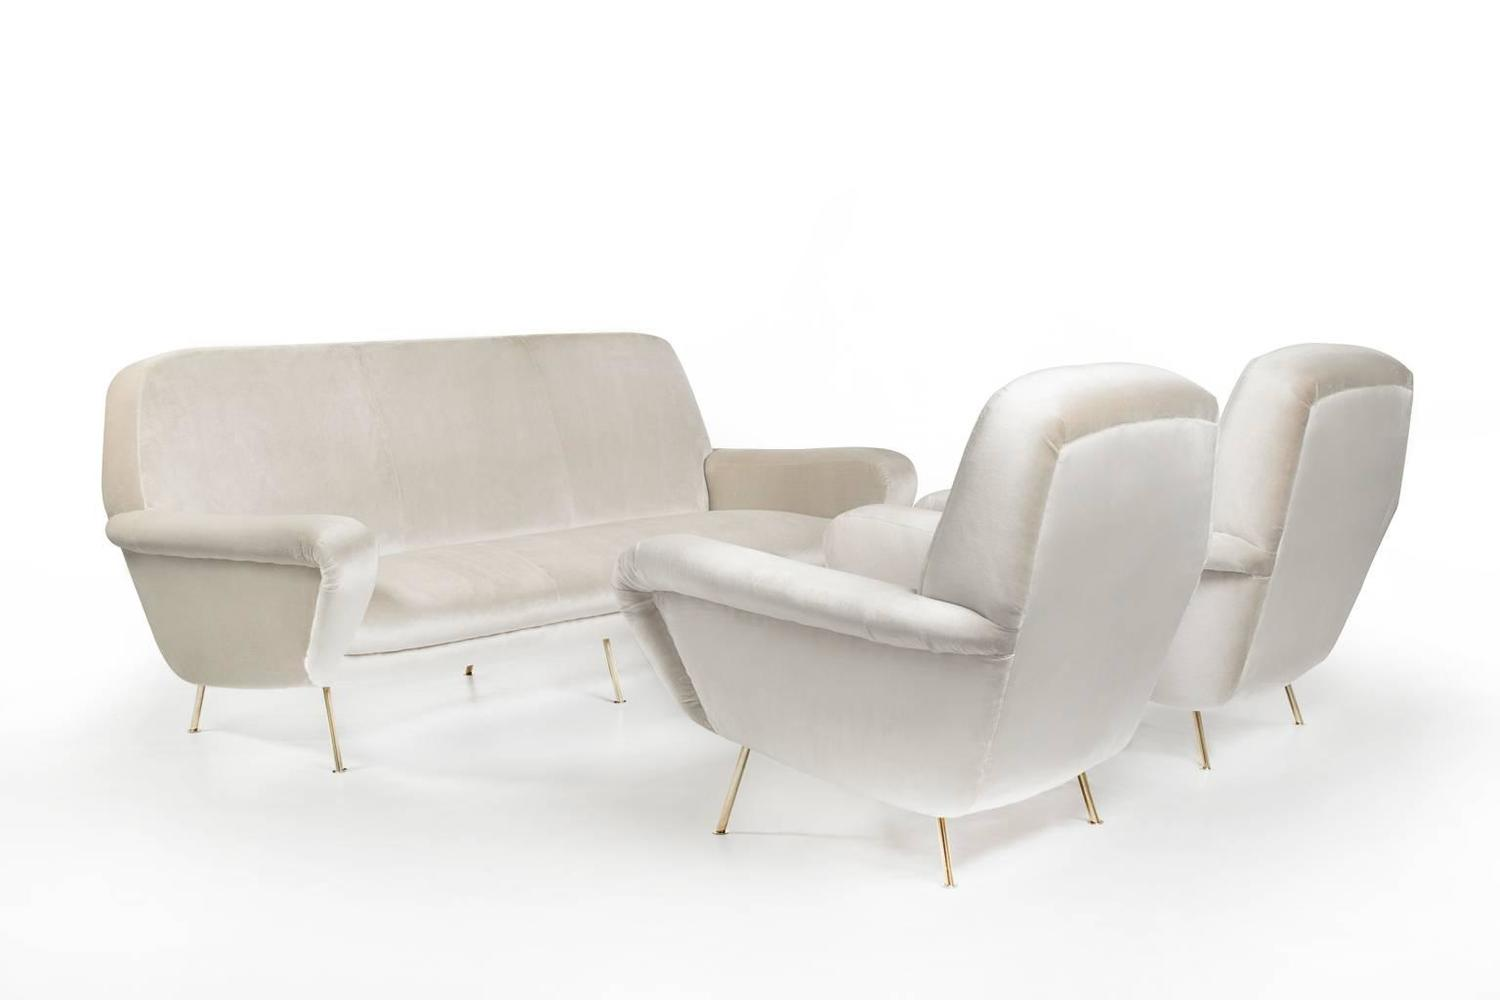 Pair of armchairs by gianfranco frattini for cassina for Cassina italy